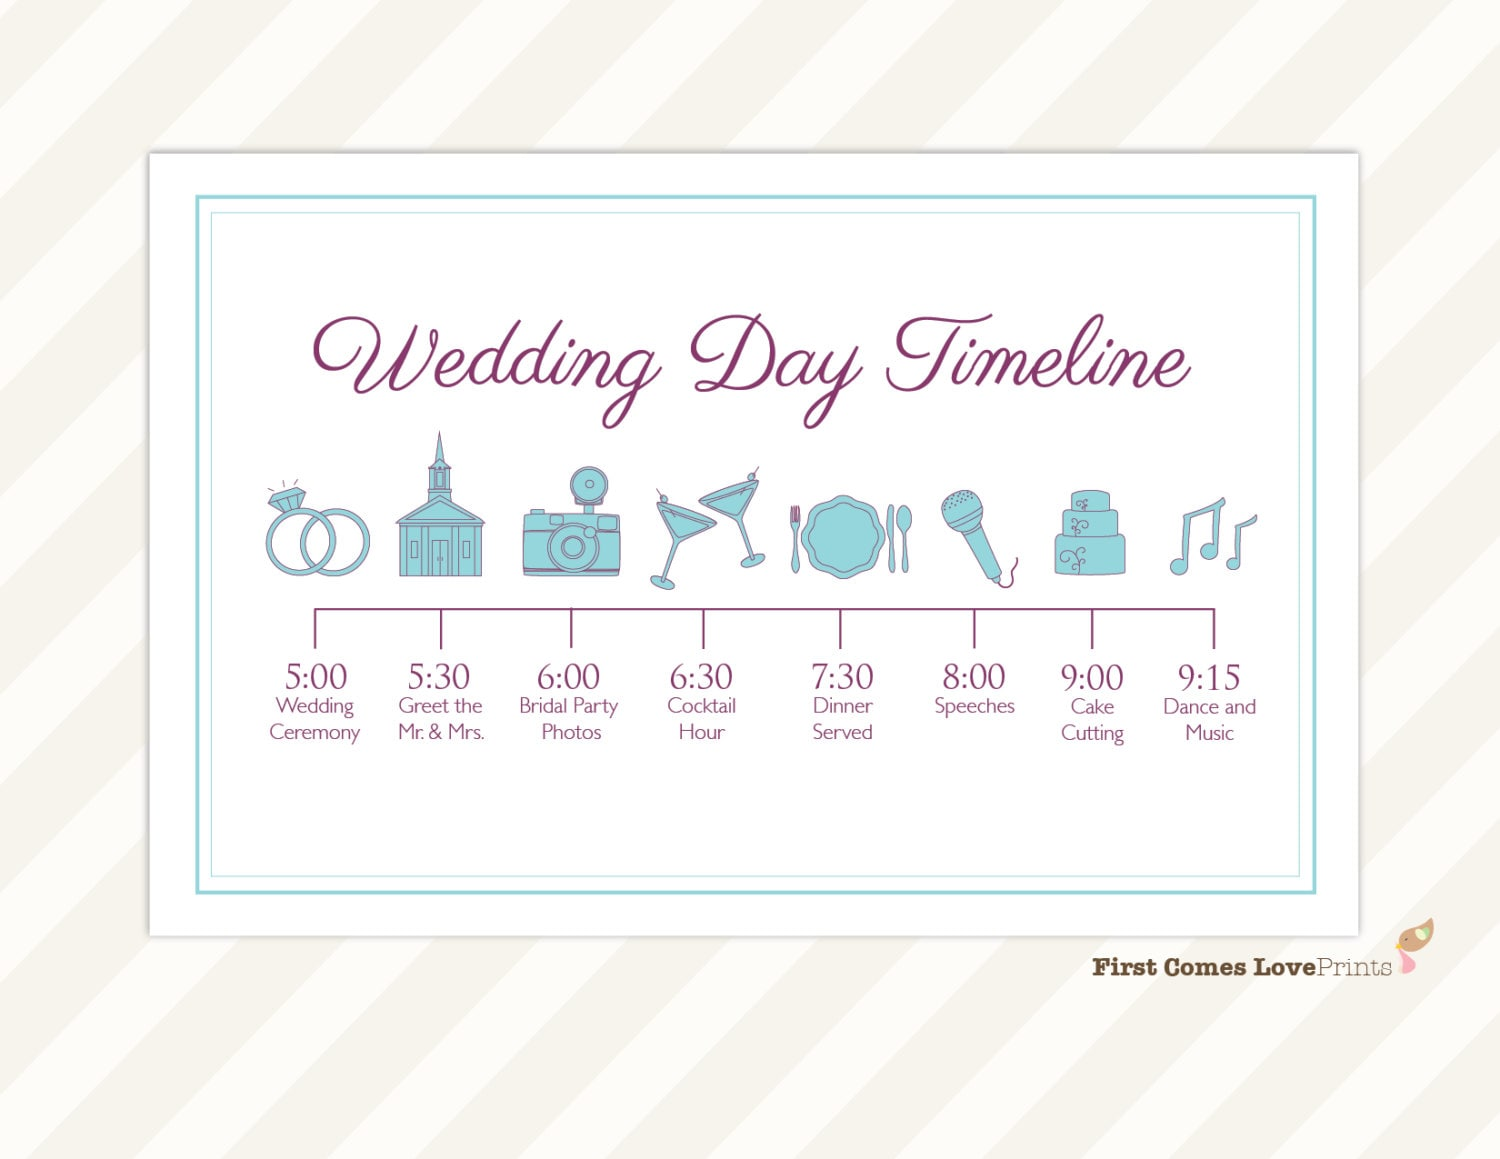 Wedding day timeline card itinerary for guests big day for Bridal shower itinerary template